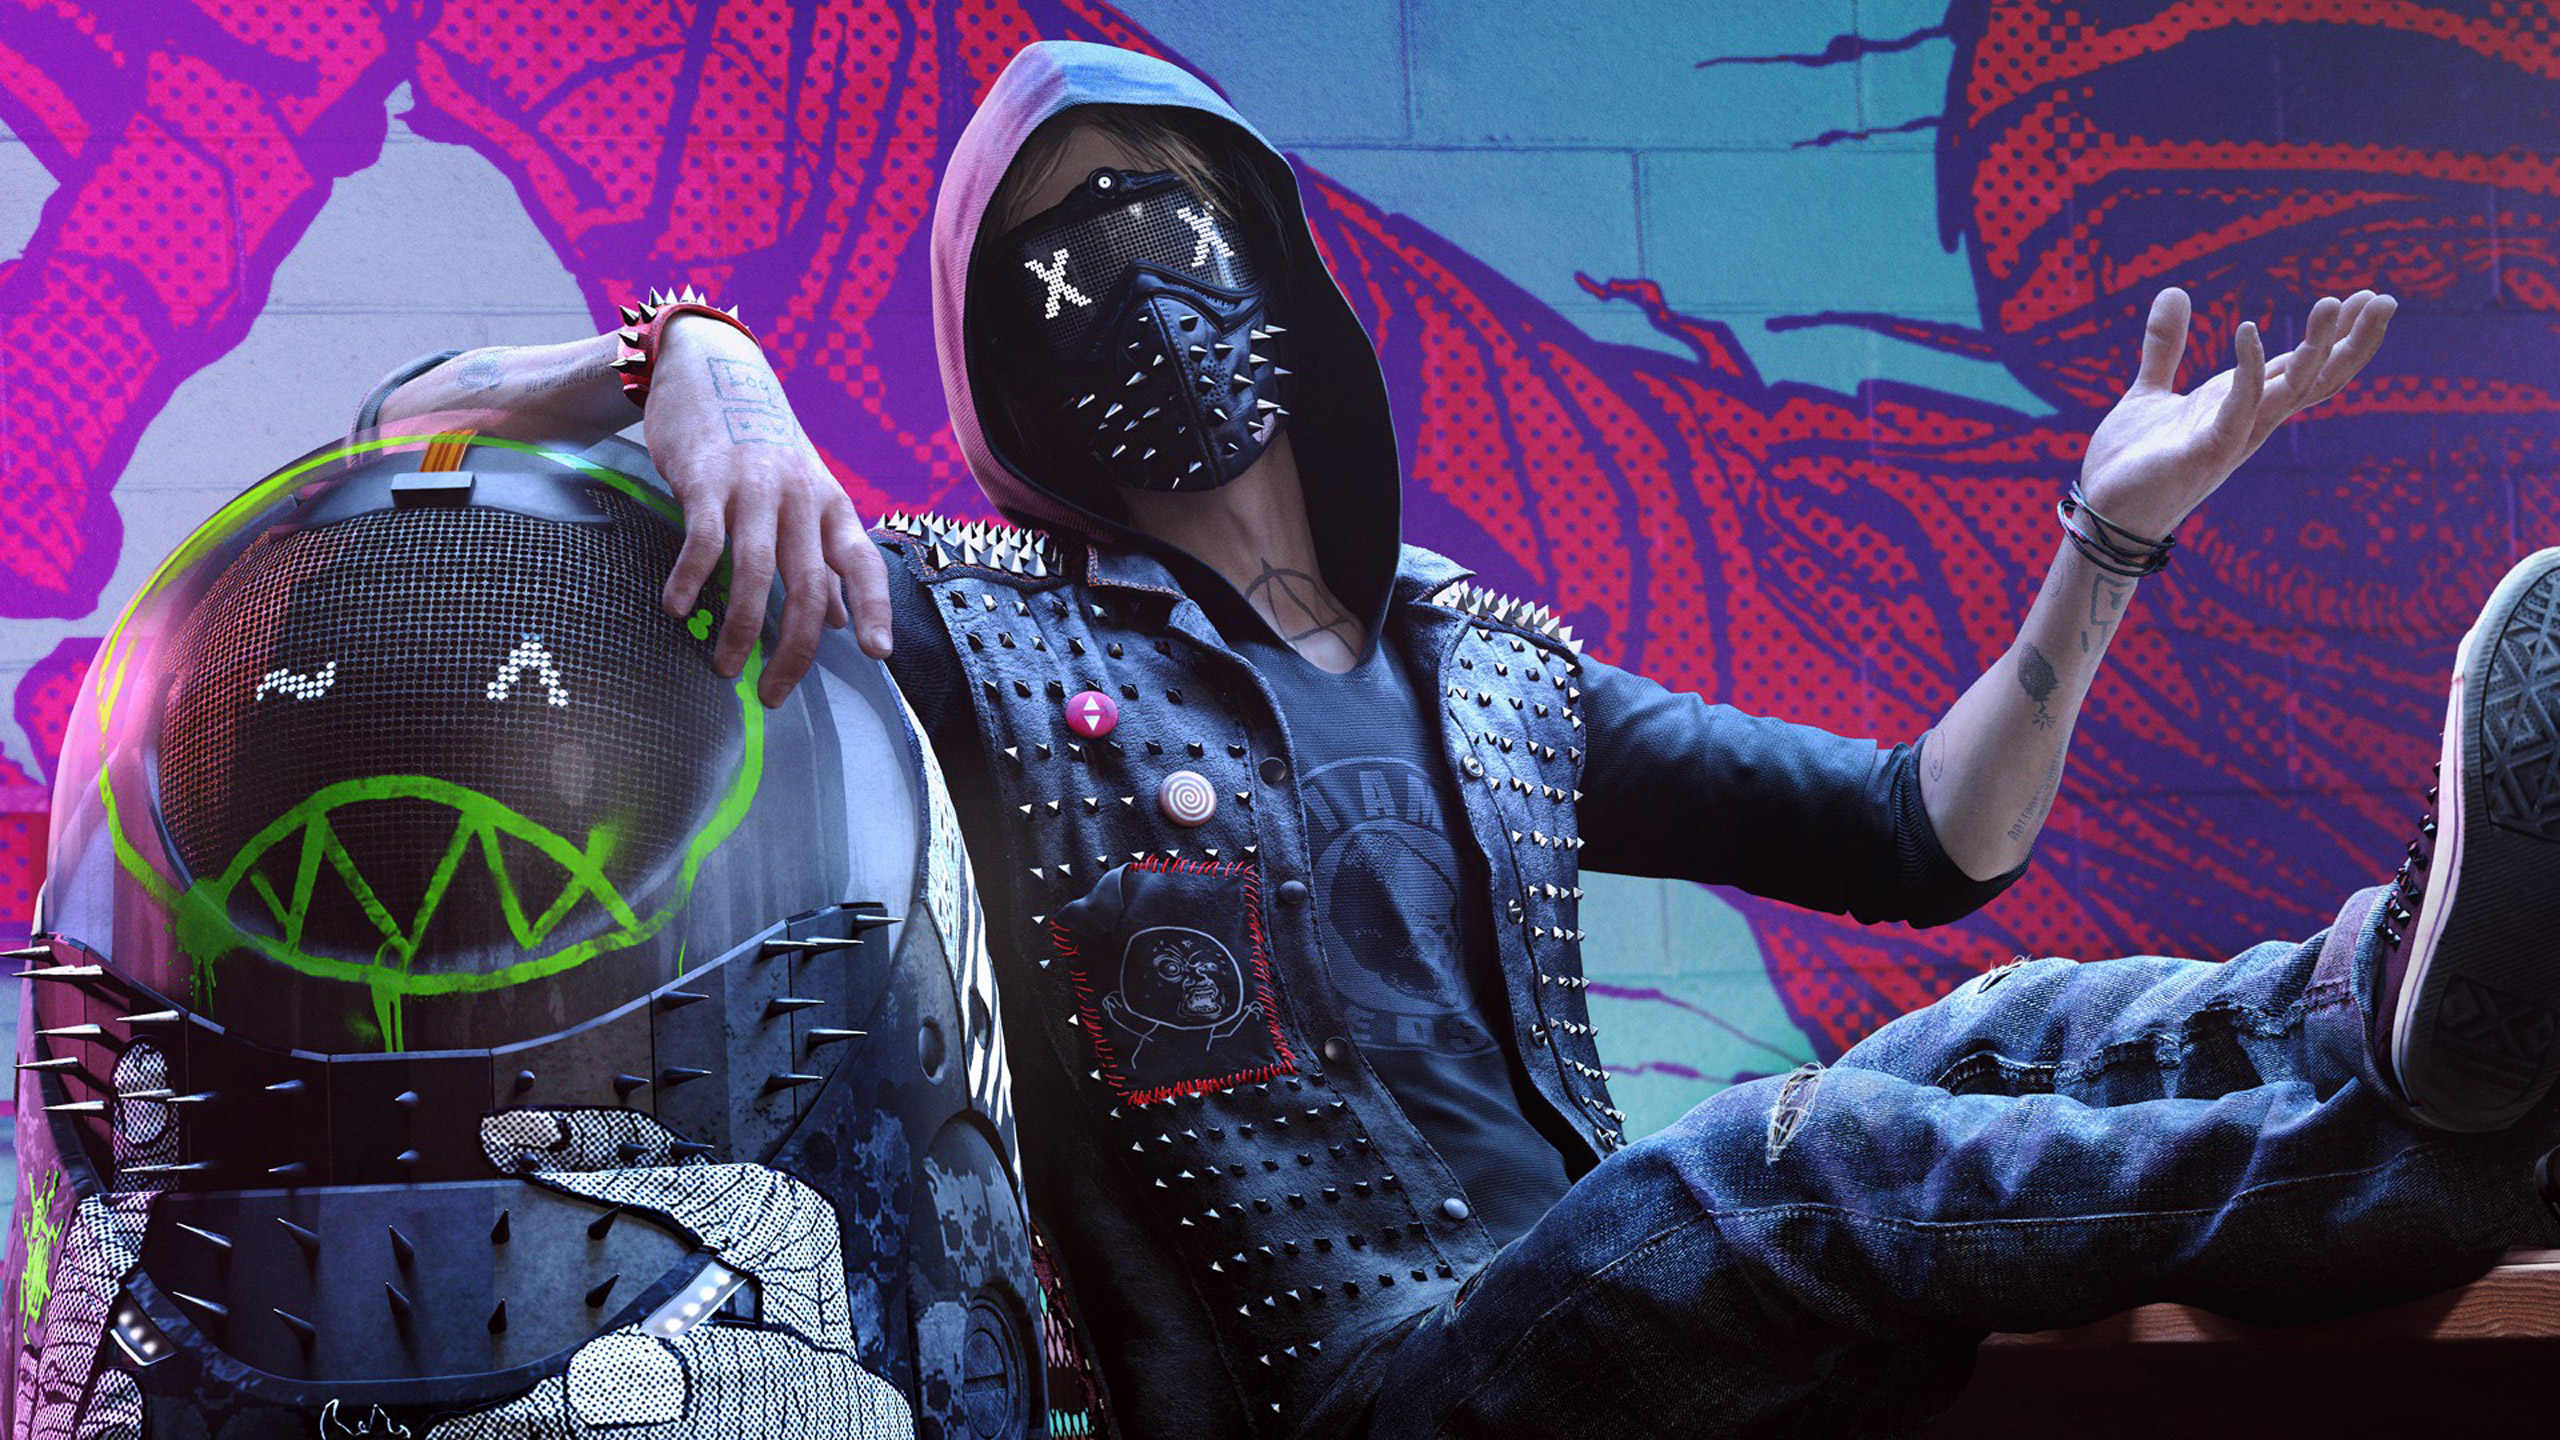 Download 3d Wallpaper Apk Wrench Watch Dogs 2 Wallpapers Wallpapers Hd